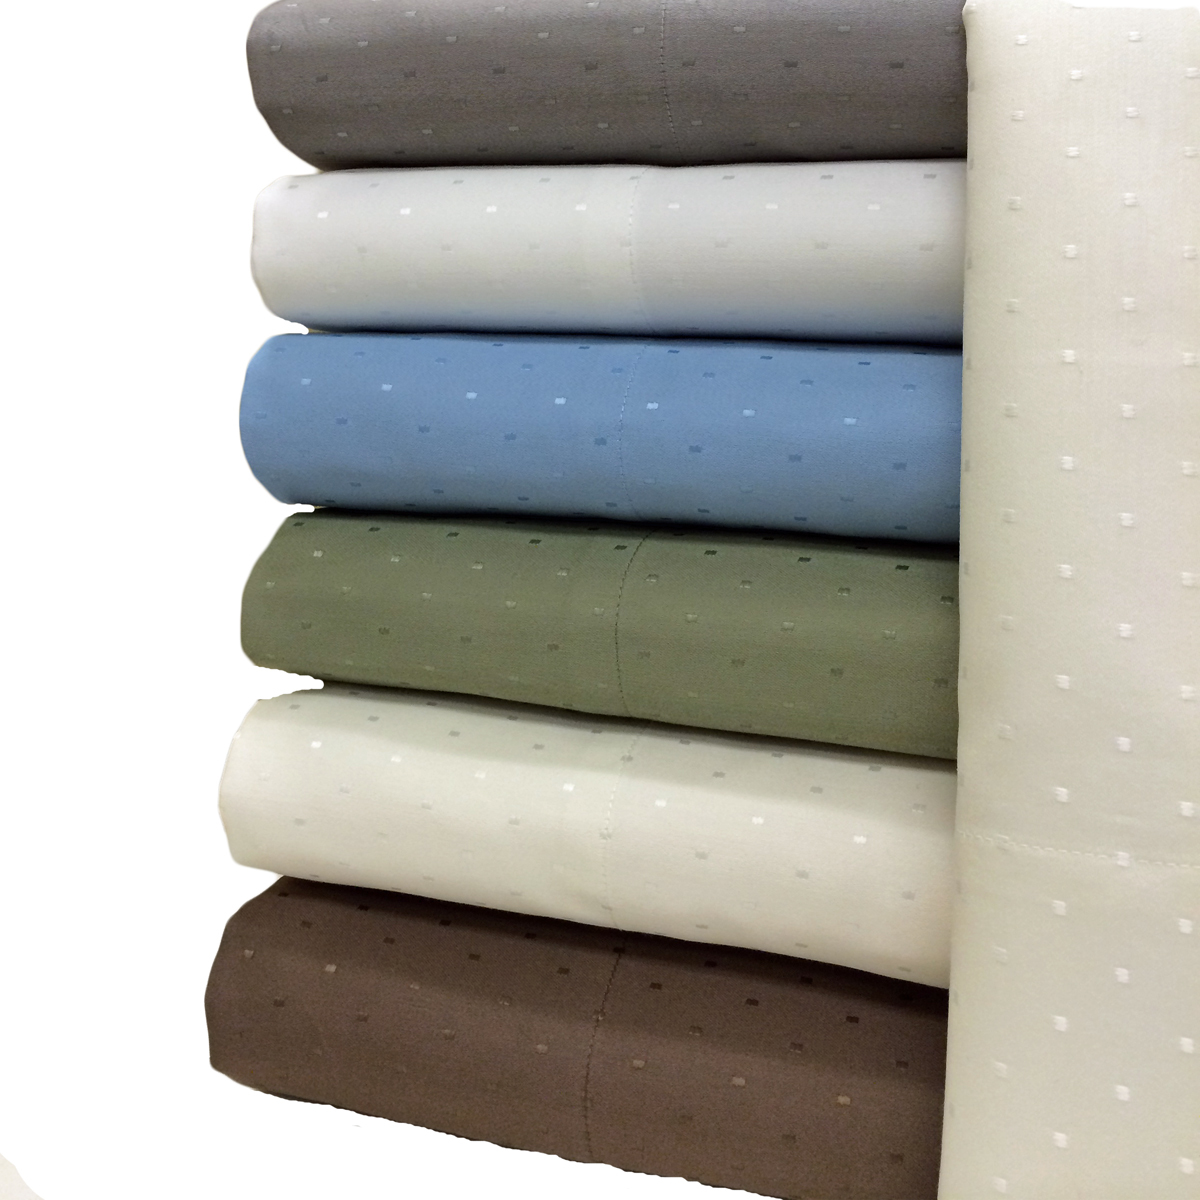 Royal Tradition Woven Dots 600 Thread Count Sheet Sets. Easy Care & Wrinkle Free 600 Thread count sheets & Pillowcases. Cotton/Polyester combine the best of both worlds, cotton for the comfort and polyester for it's strength.